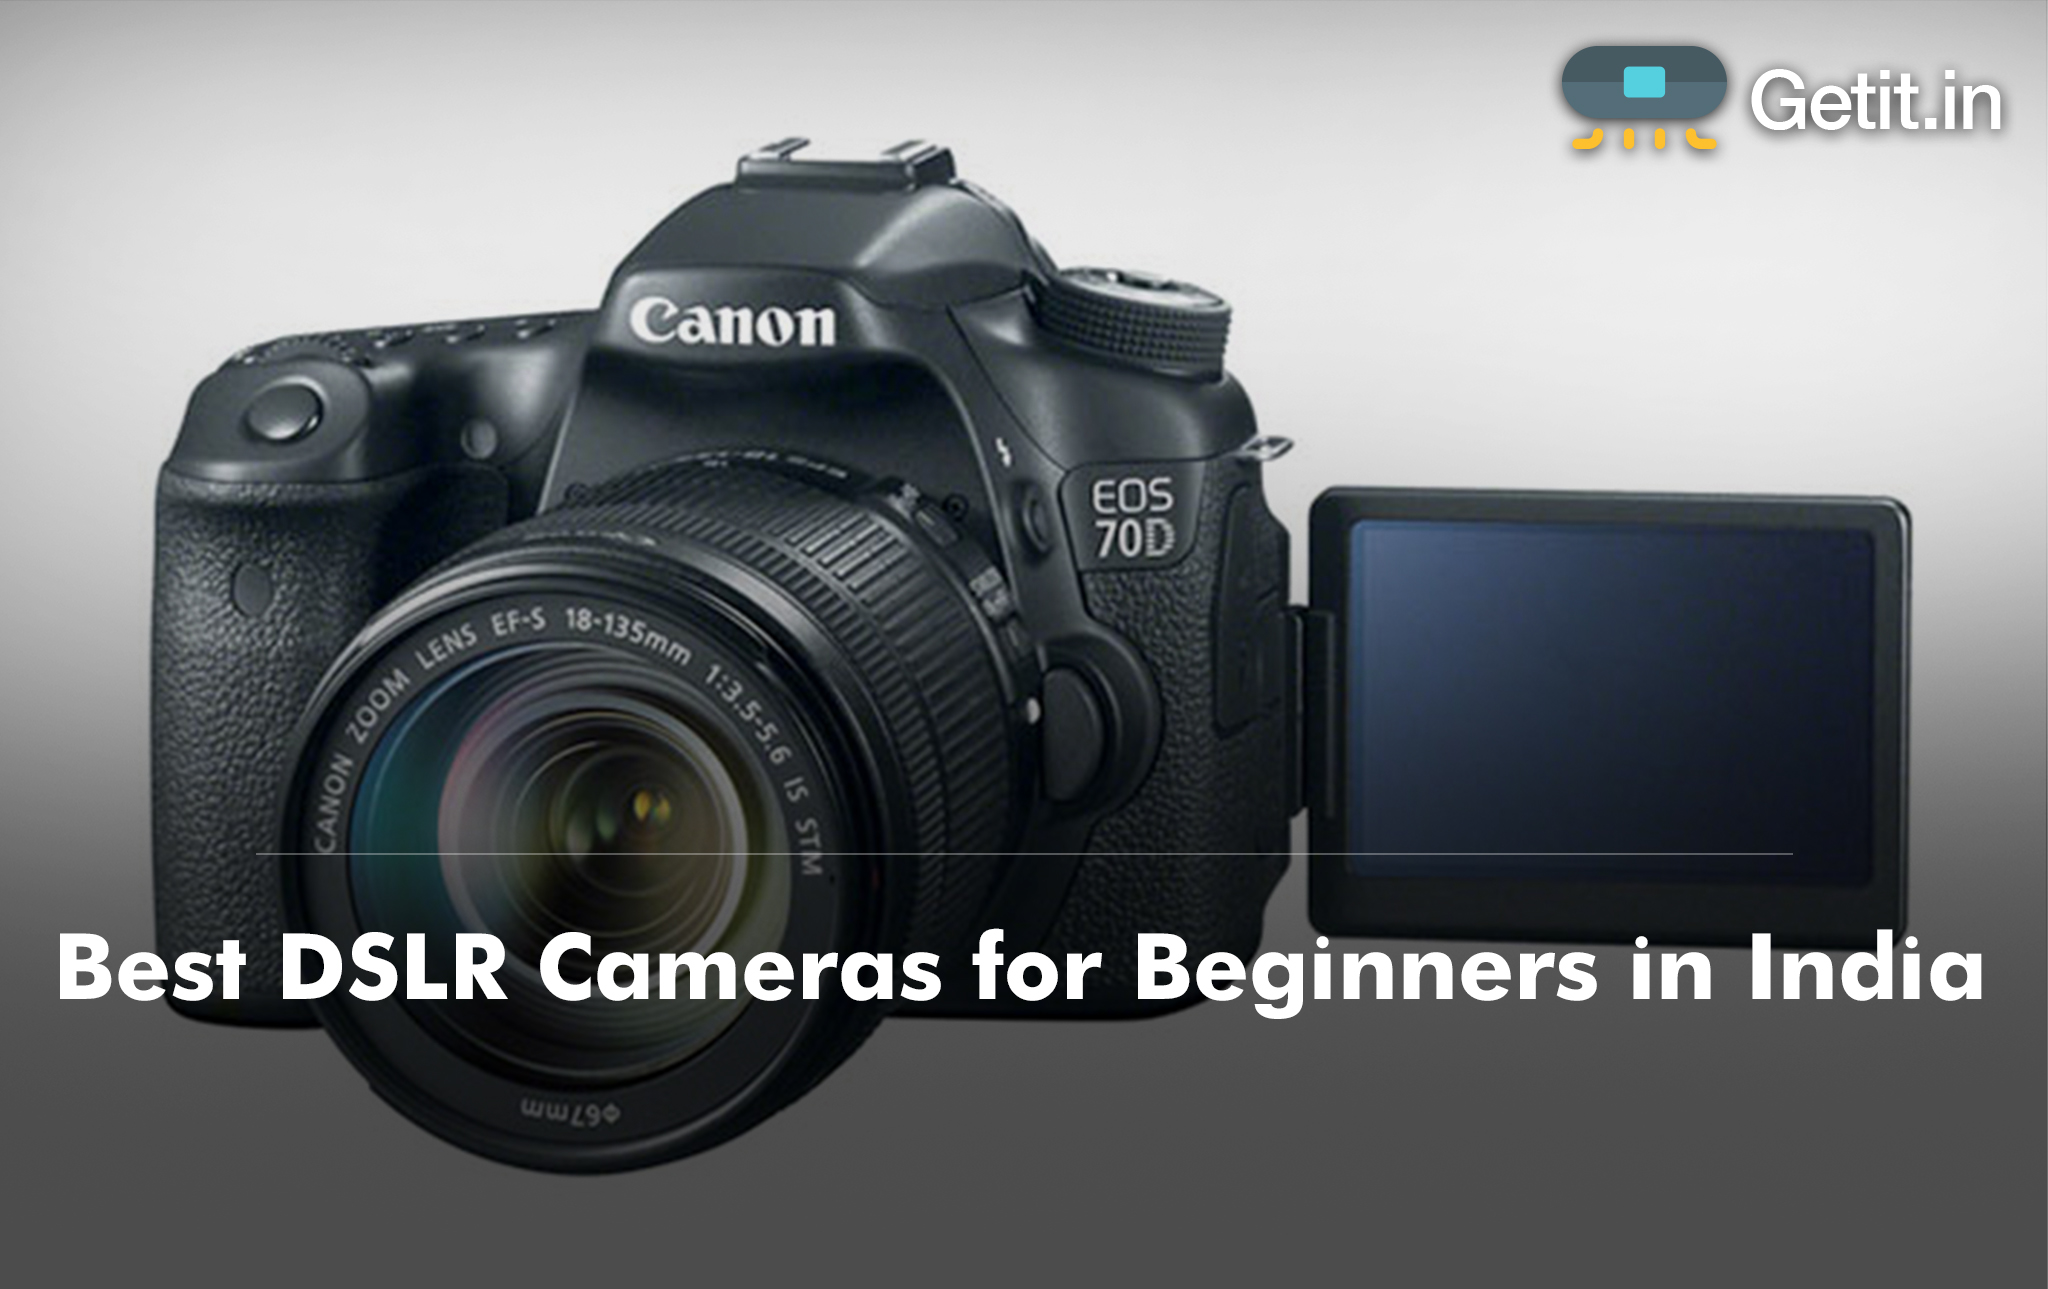 Best DSLR Cameras for Beginners in India